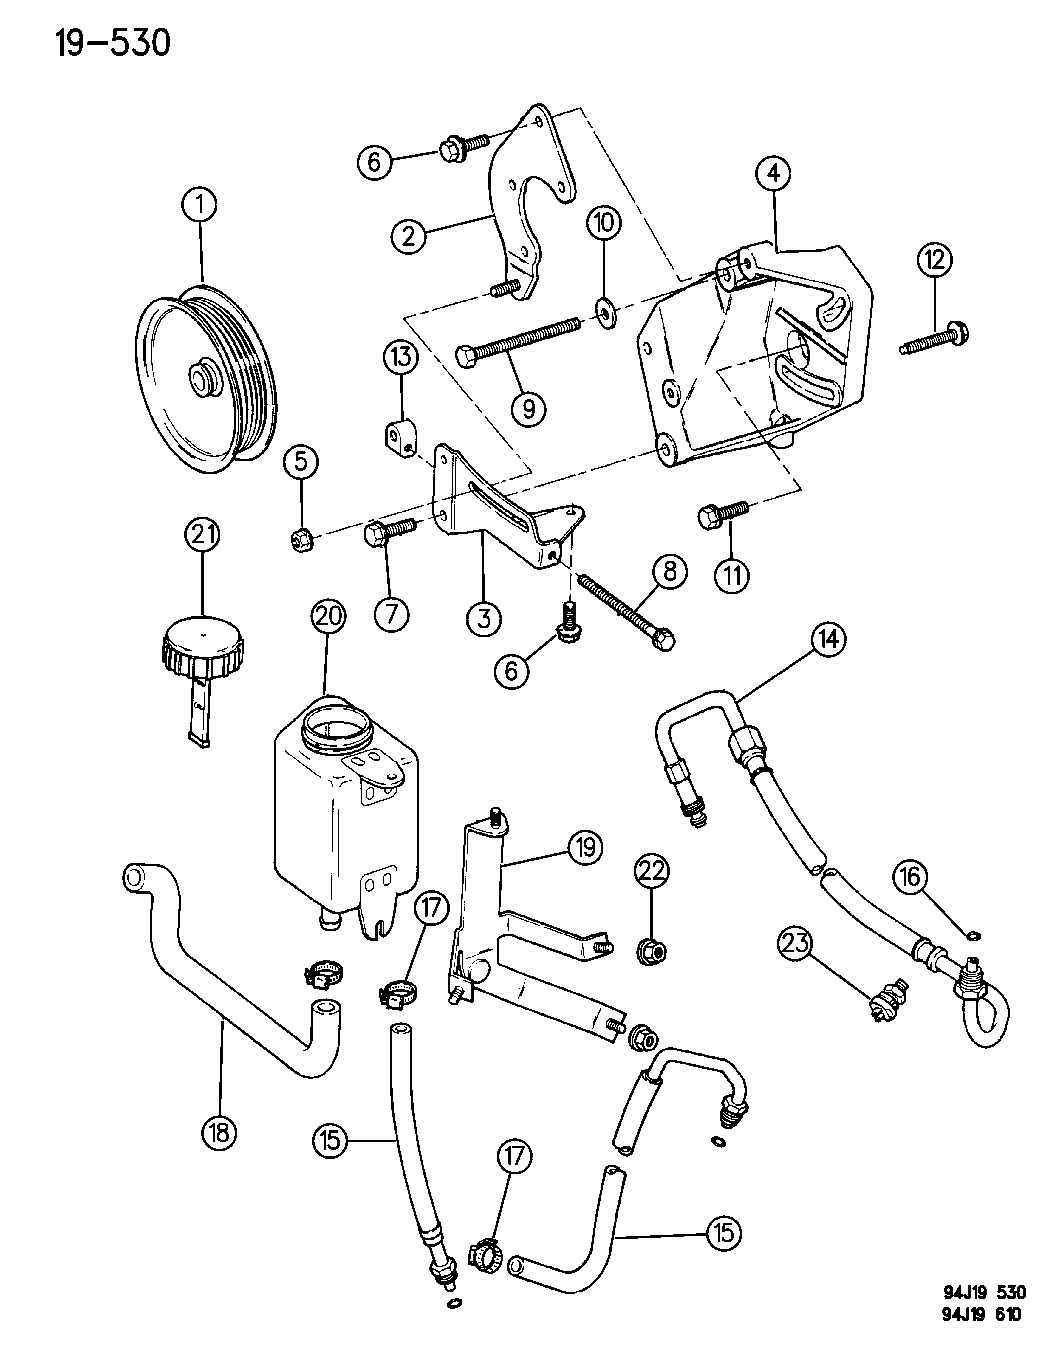 Jeep Grand Cherokee Power Steering Engine Diagram, Jeep